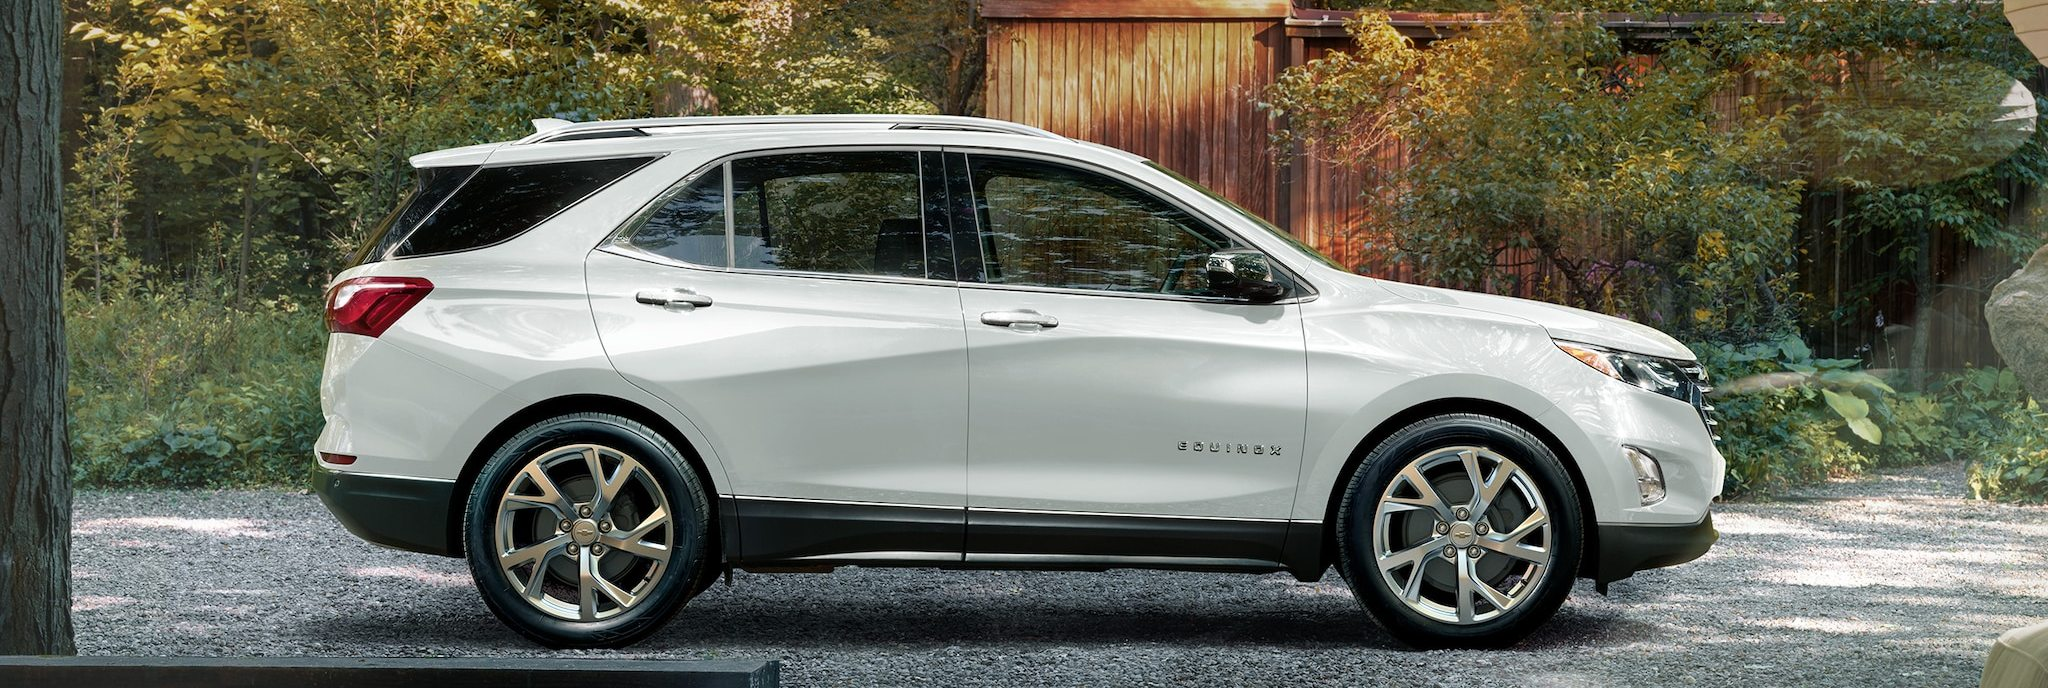 2020 Chevrolet Equinox Leasing near Detroit, MI